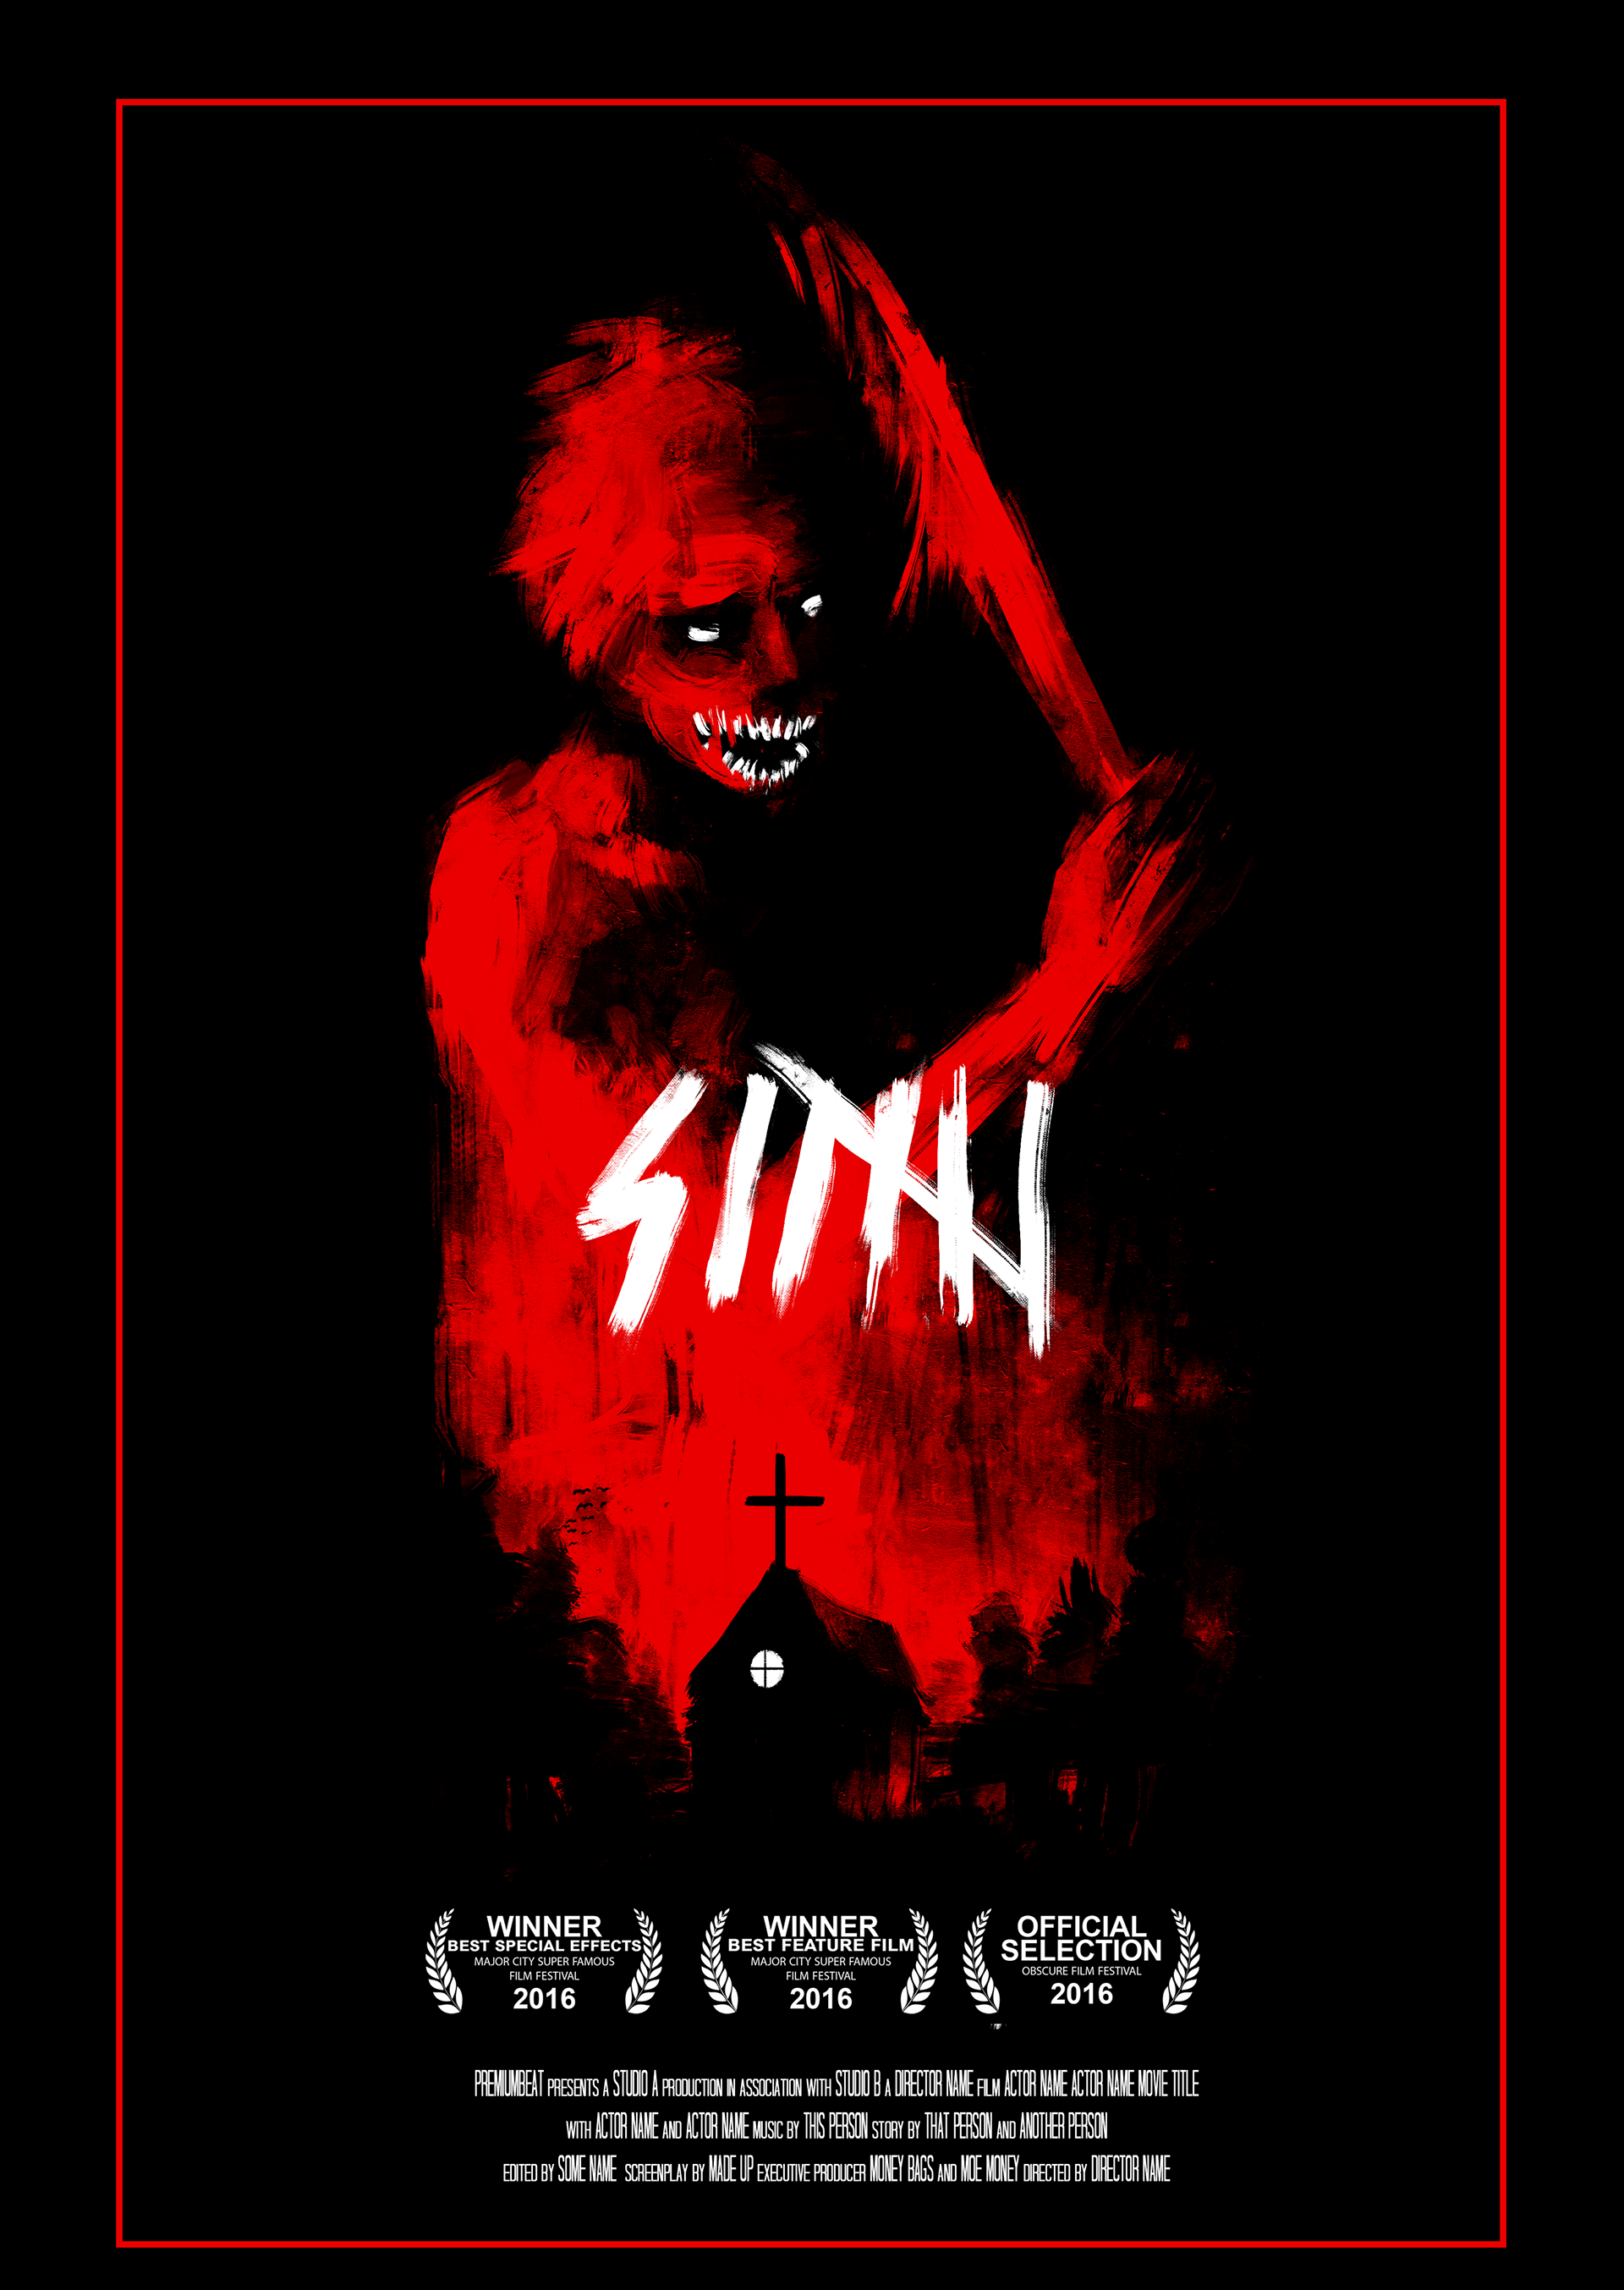 Basic Horror Slasher Movie Poster So I Decided To Add In Some Credits And Awards Just Spruce It Up Make Look As If Its A Coming Out